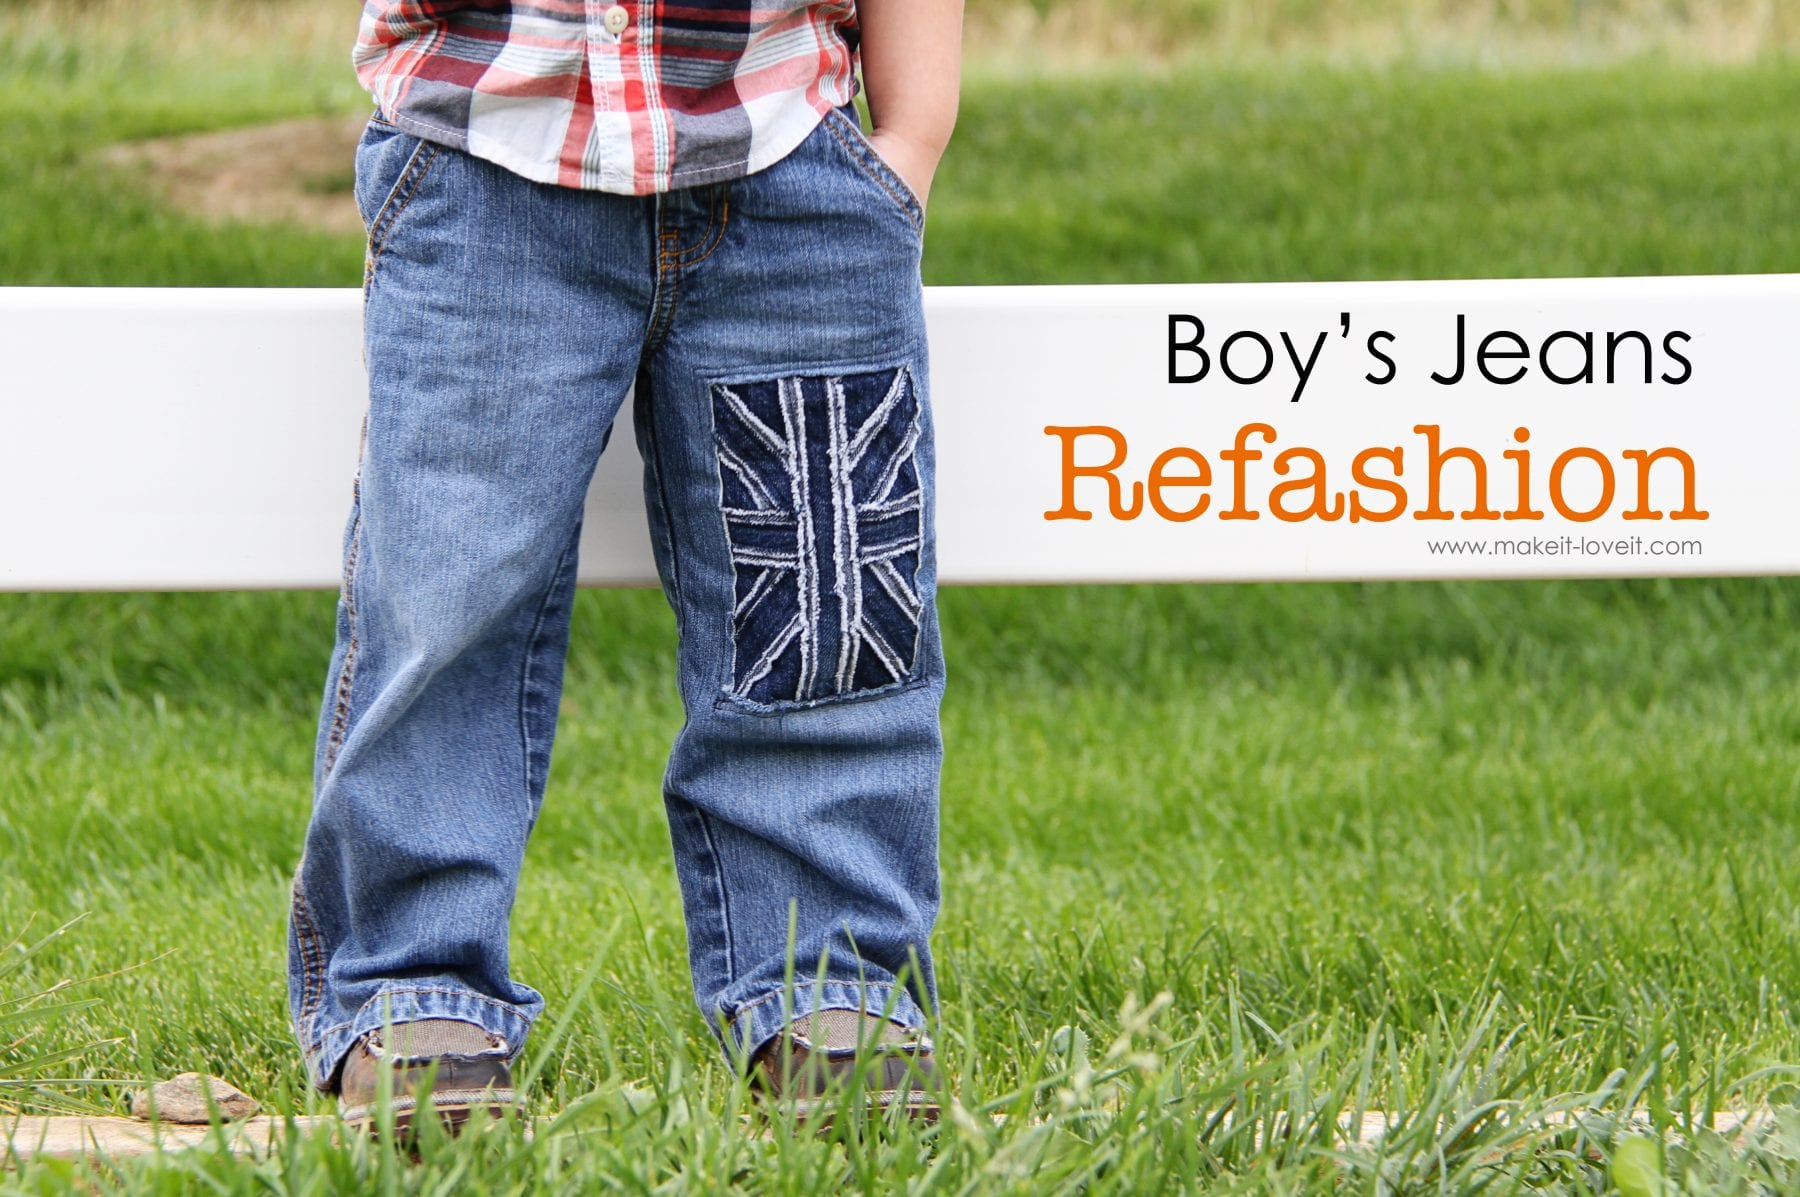 Little Boy Jeans: Refashion (with UK flag)